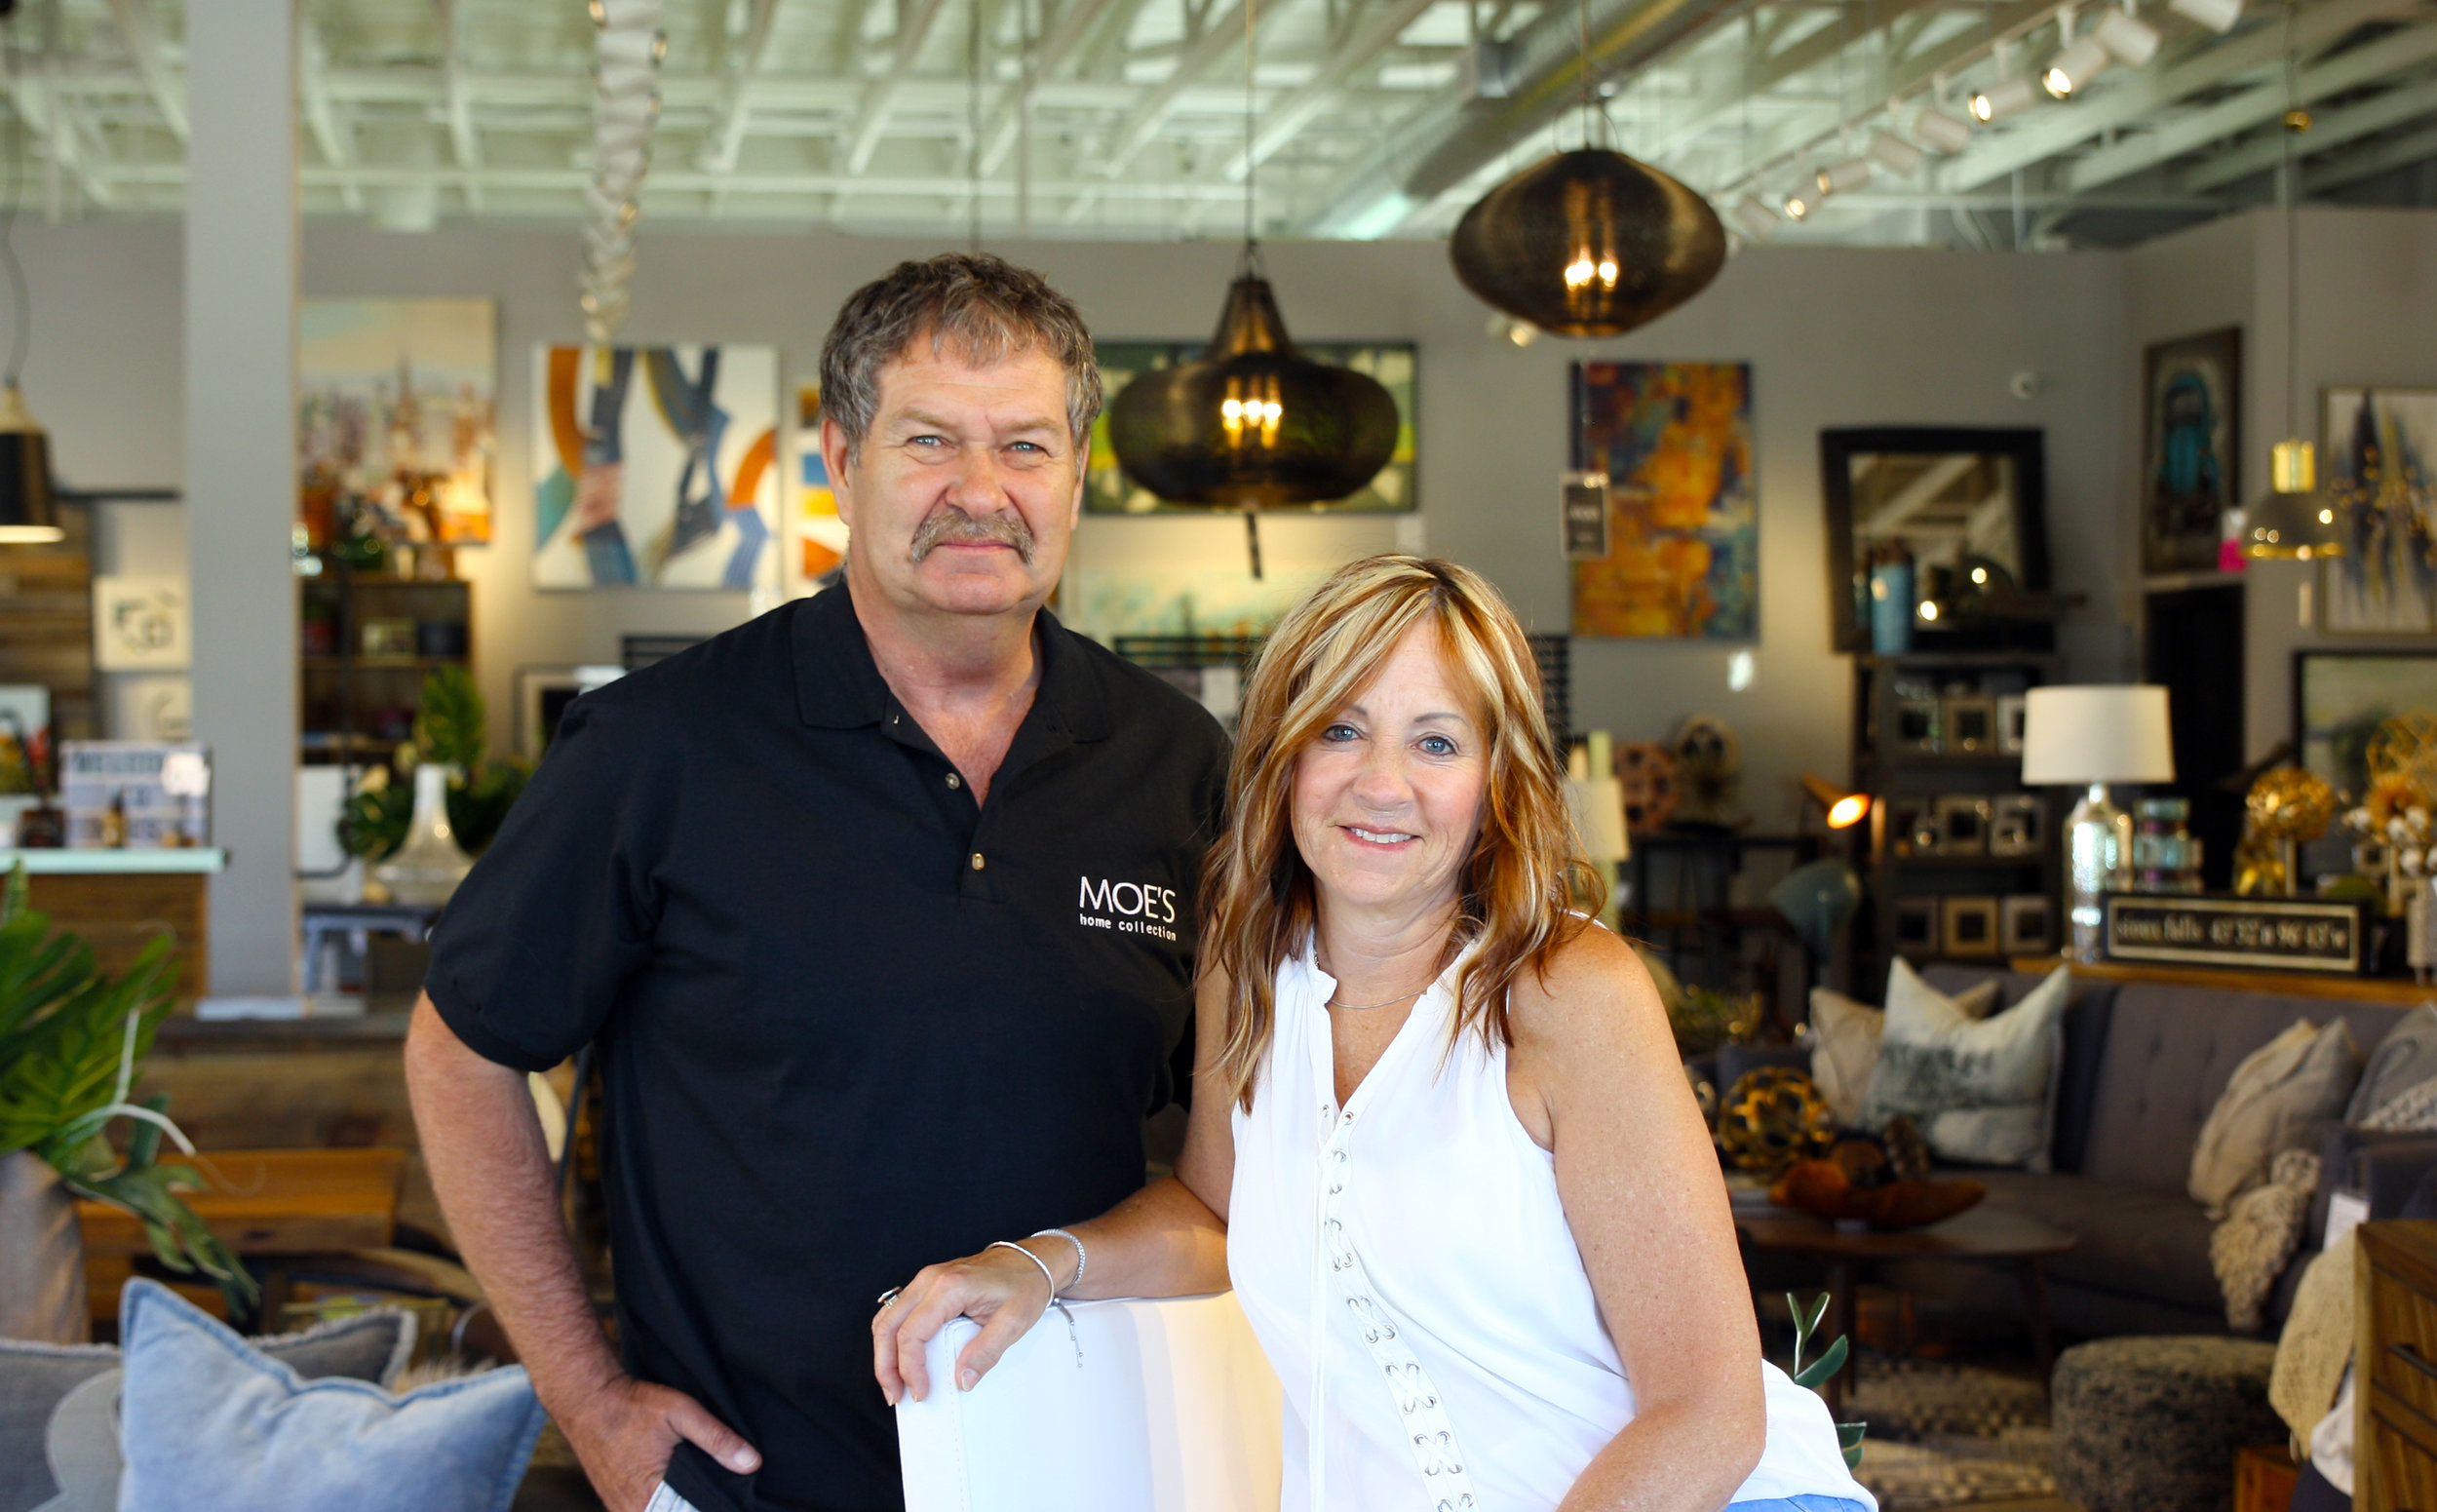 Dave and Tamara Dettler, owners of Moe's Home Lake Lorraine, feel perfectly at home at the lake.